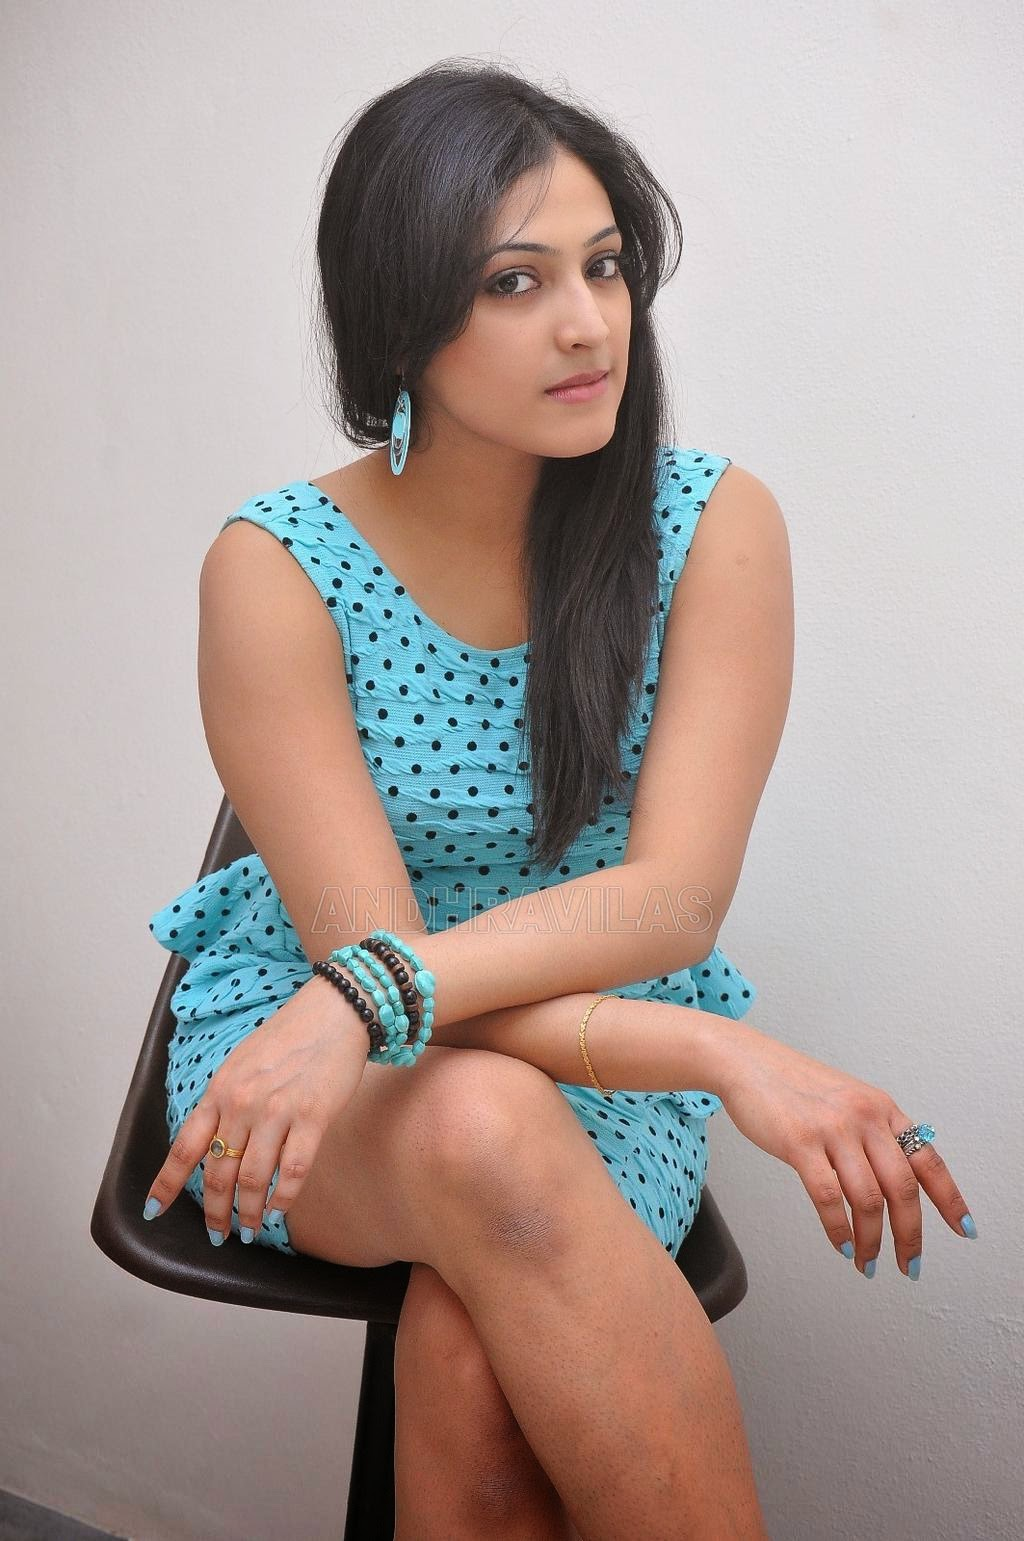 Actress Kannada Haripriya Latest Photos Mini Skirt Gallery